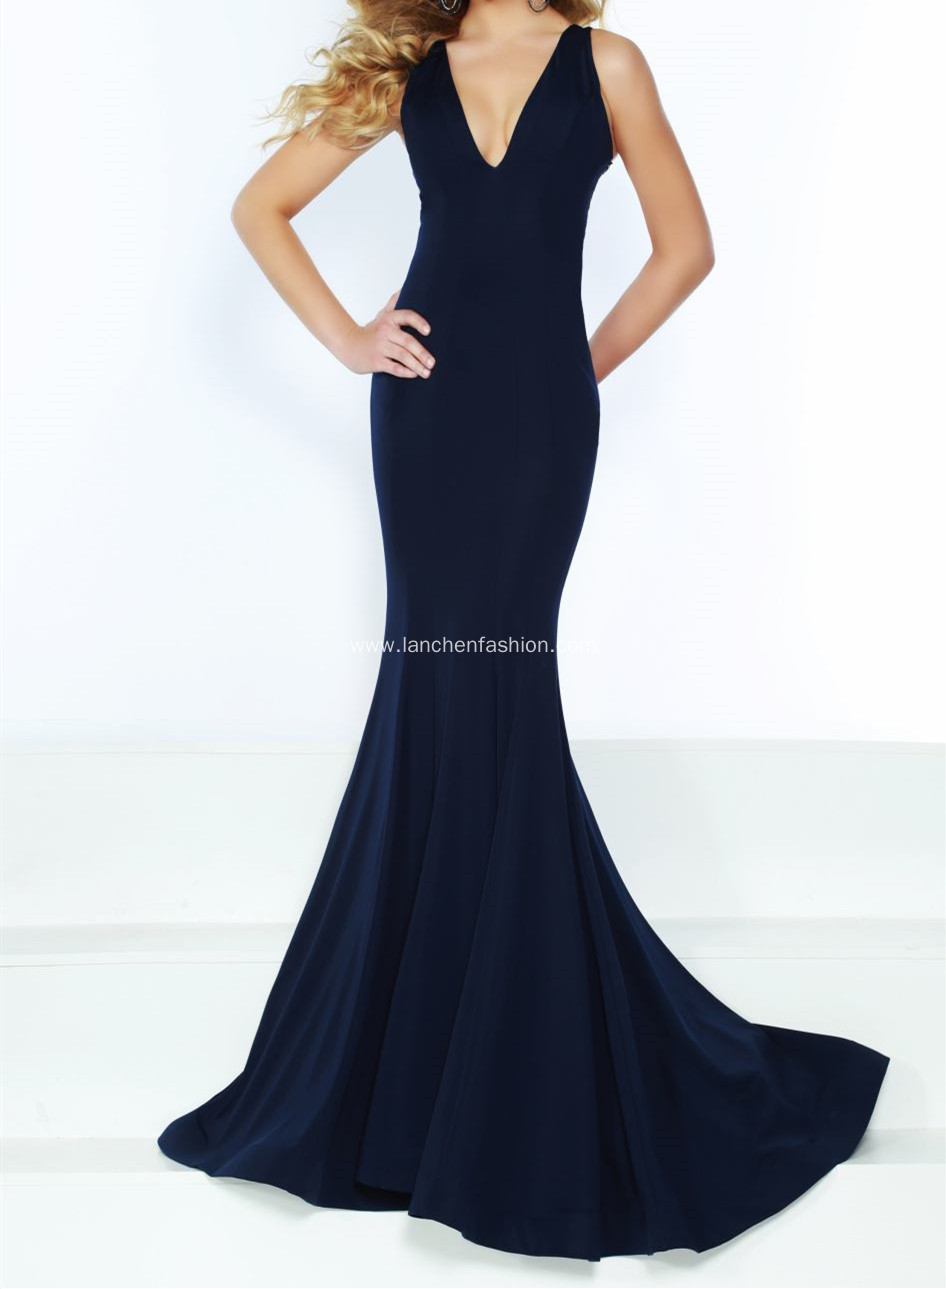 Jersey Evening Gown Prom Dresses Wholesale